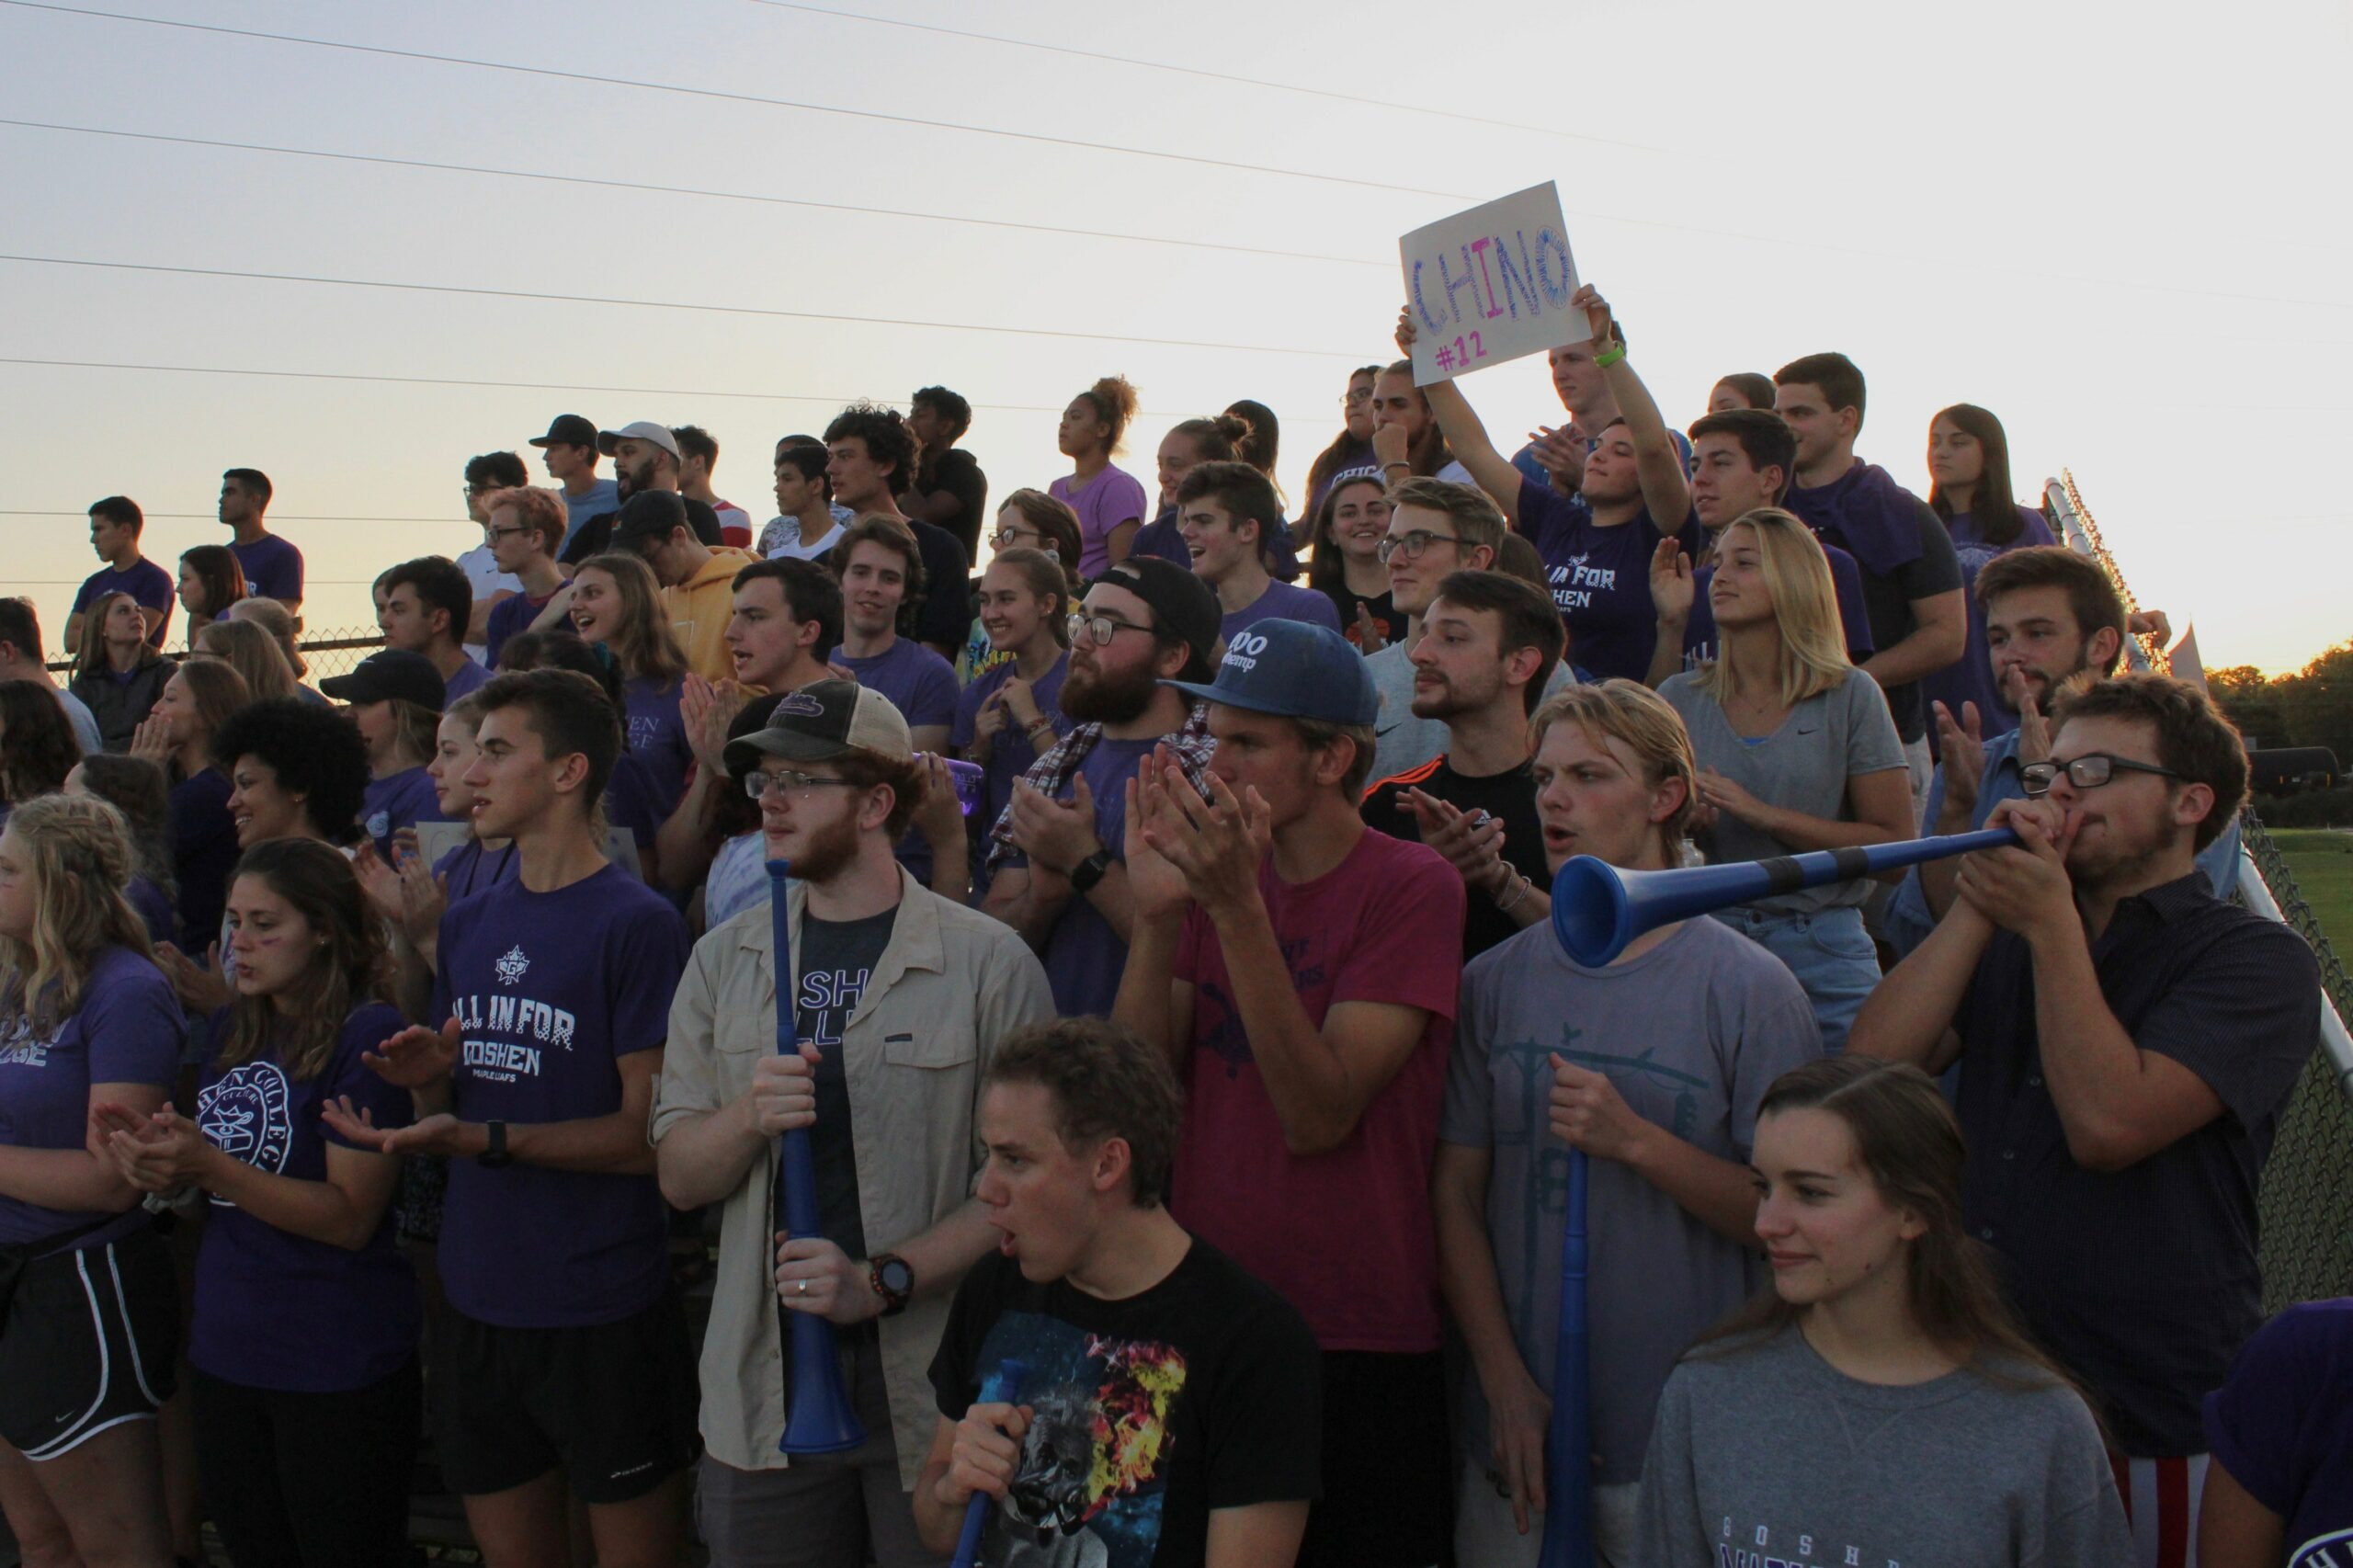 Goshen students crowd the stands to cheer during a game